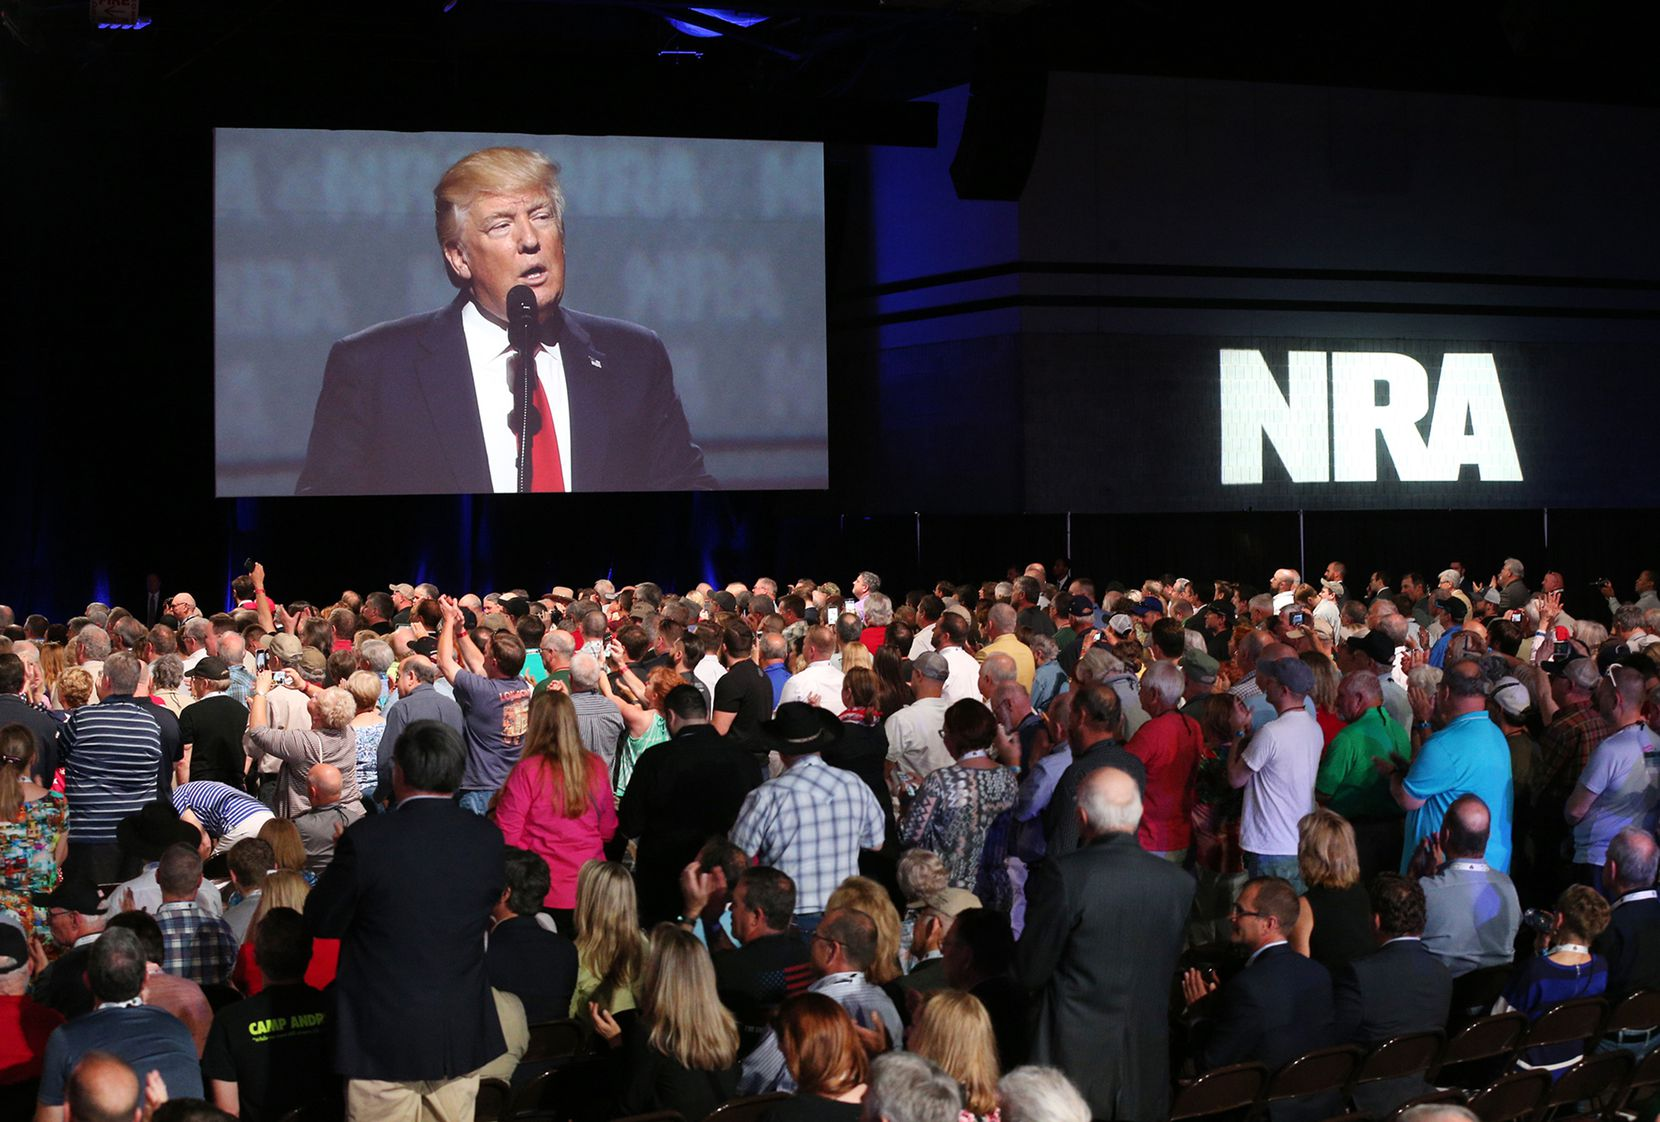 Thousands of NRA attendees watch the keynote by President Donald J. Trump on one of the giant screens in Hall A at the NRA-ILA Leadership Forum on Friday, April 28, 2017, in Atlanta.